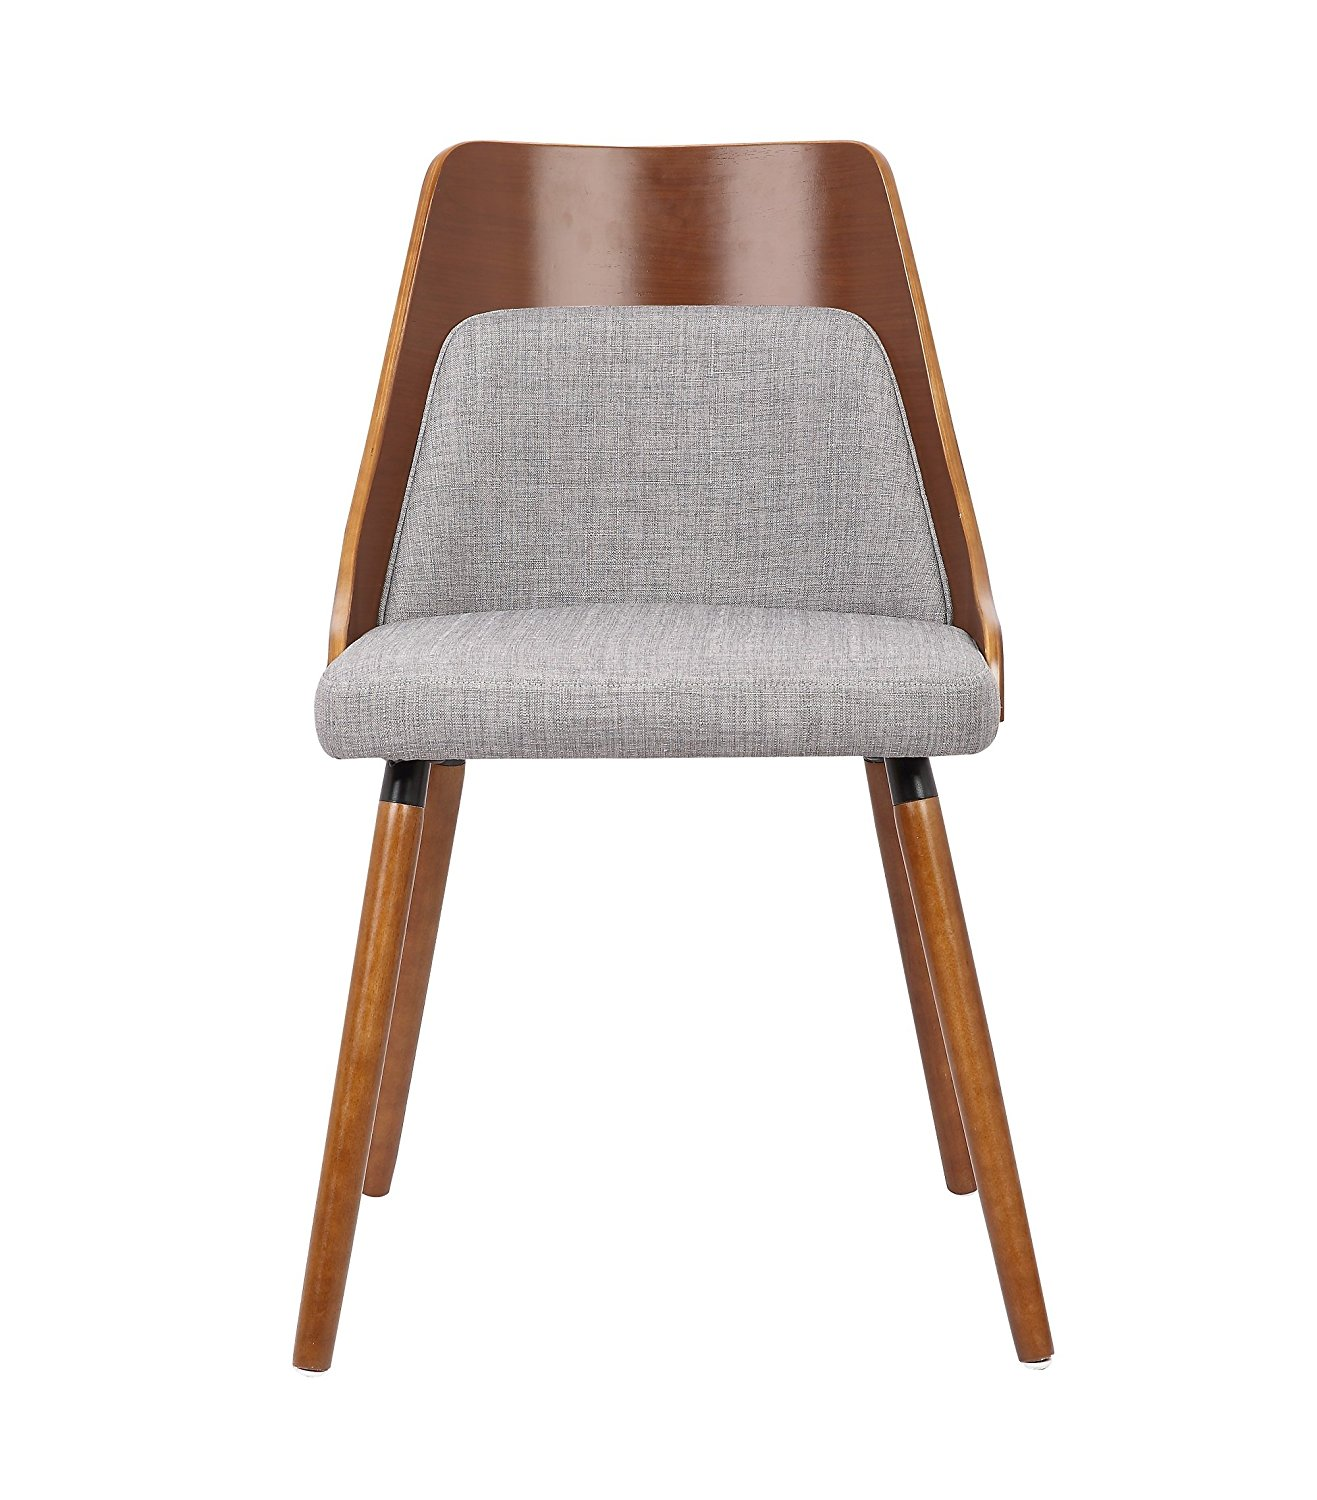 Container Furniture Direct Porter Collection Mid Century Wood and Fabric Upholstered Dining Chair with Solid Wood Legs, Grey